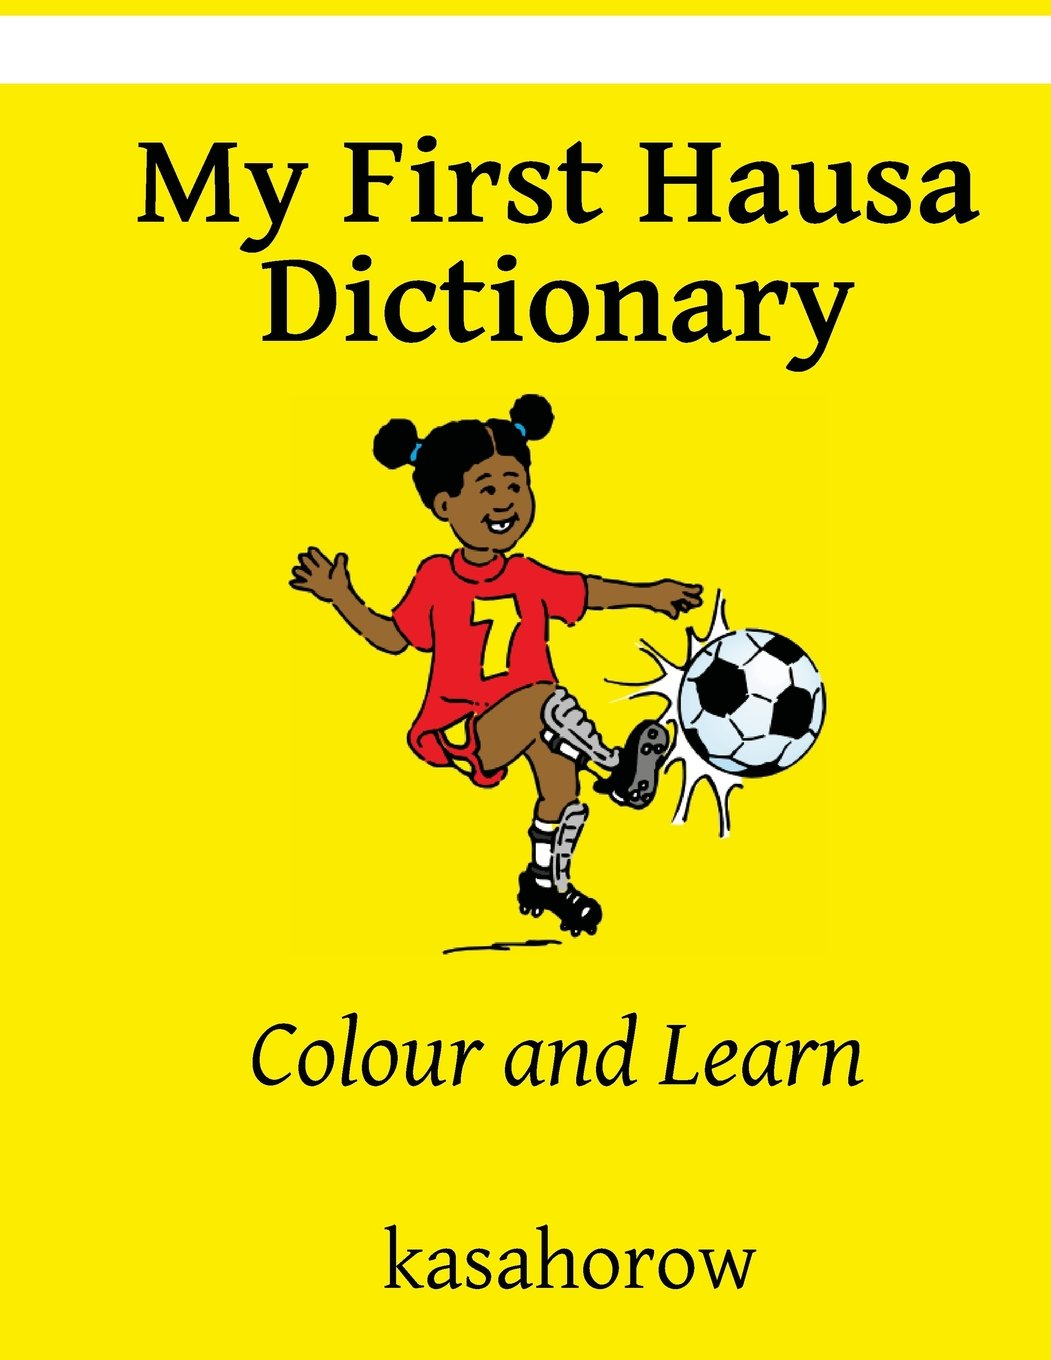 My First Hausa Dictionary: Colour and Learn (Hausa Edition